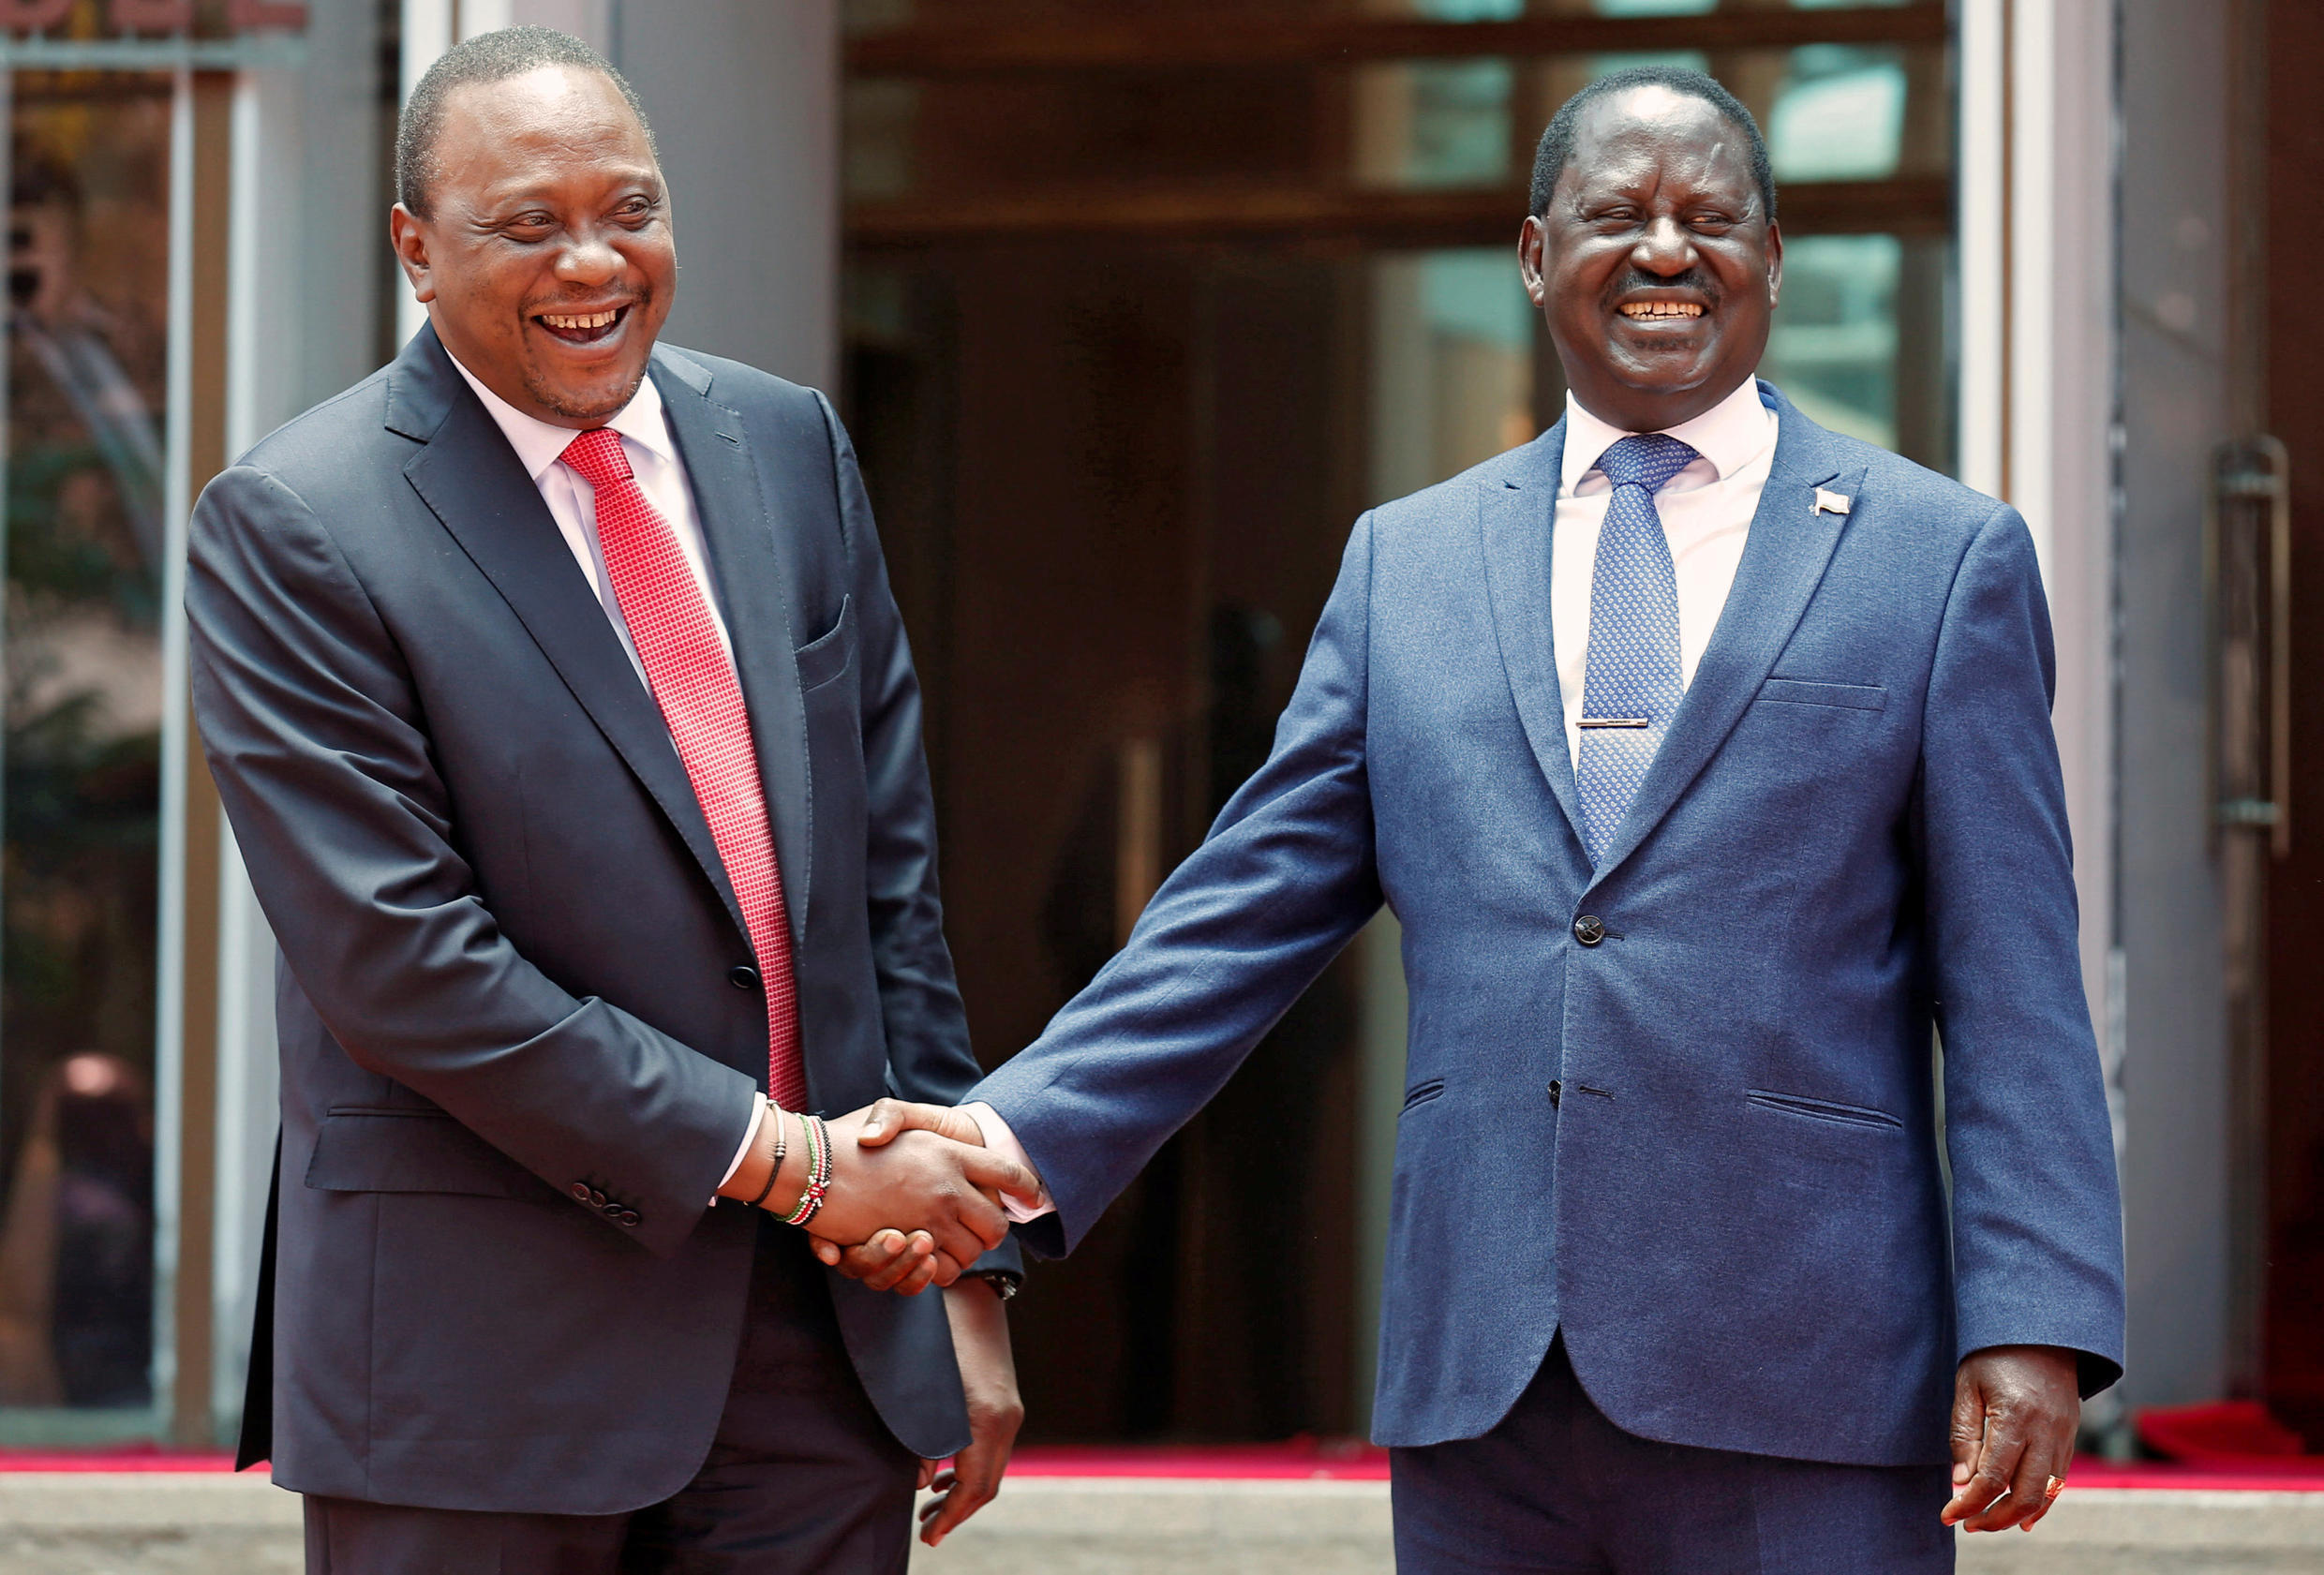 Kenya's President Uhuru Kenyatta (L) greets opposition leader Raila Odinga of the National Super Alliance (NASA) coalition after addressing a news conference at the Harambee house office in Nairobi, Kenya March 9, 2018.